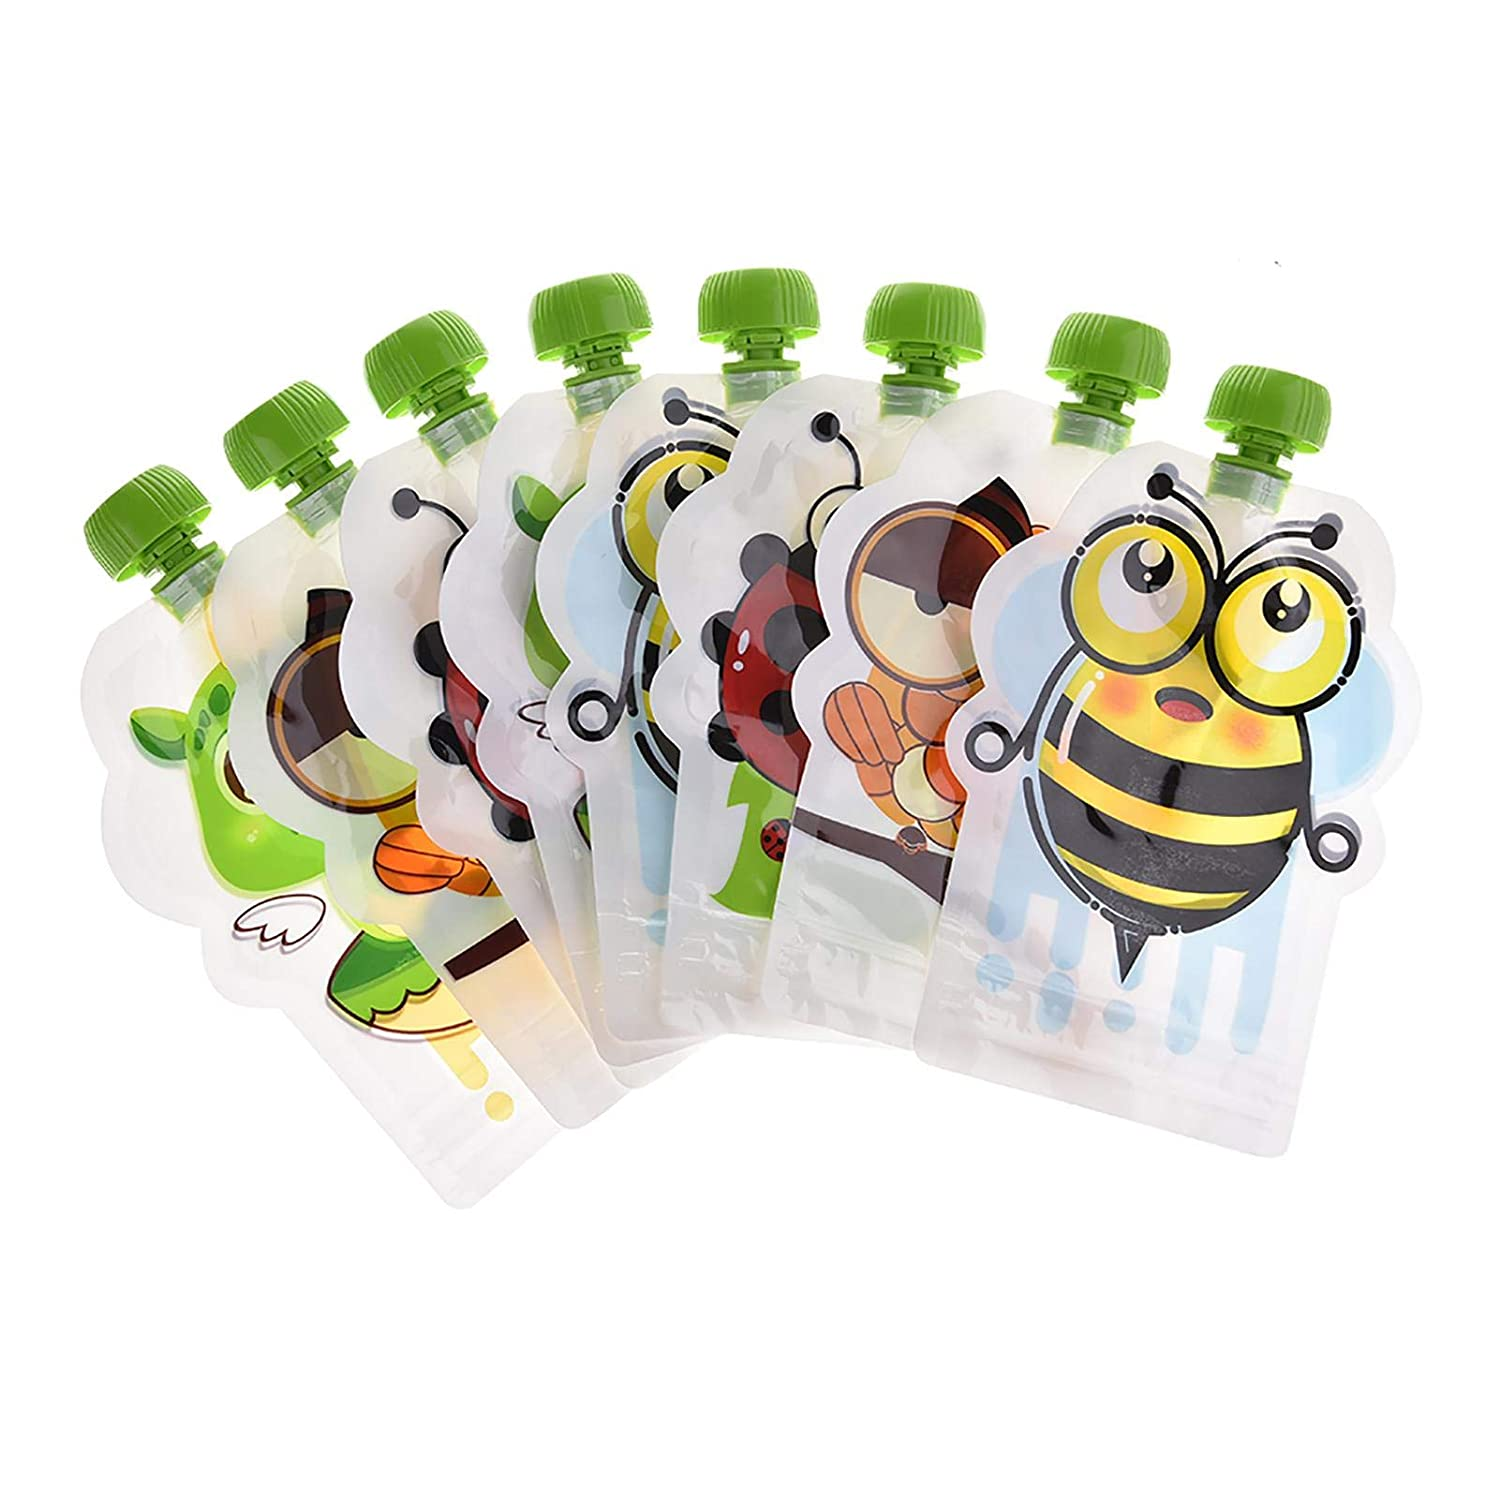 Reusable Baby Food Pouches, Baby Food Pouch Starter Set of 8 Pcs Baby Snack Containers, BPA-Free Sealed Food Pouches Set, Spill Proof, Double Zipper, Holds 5oz